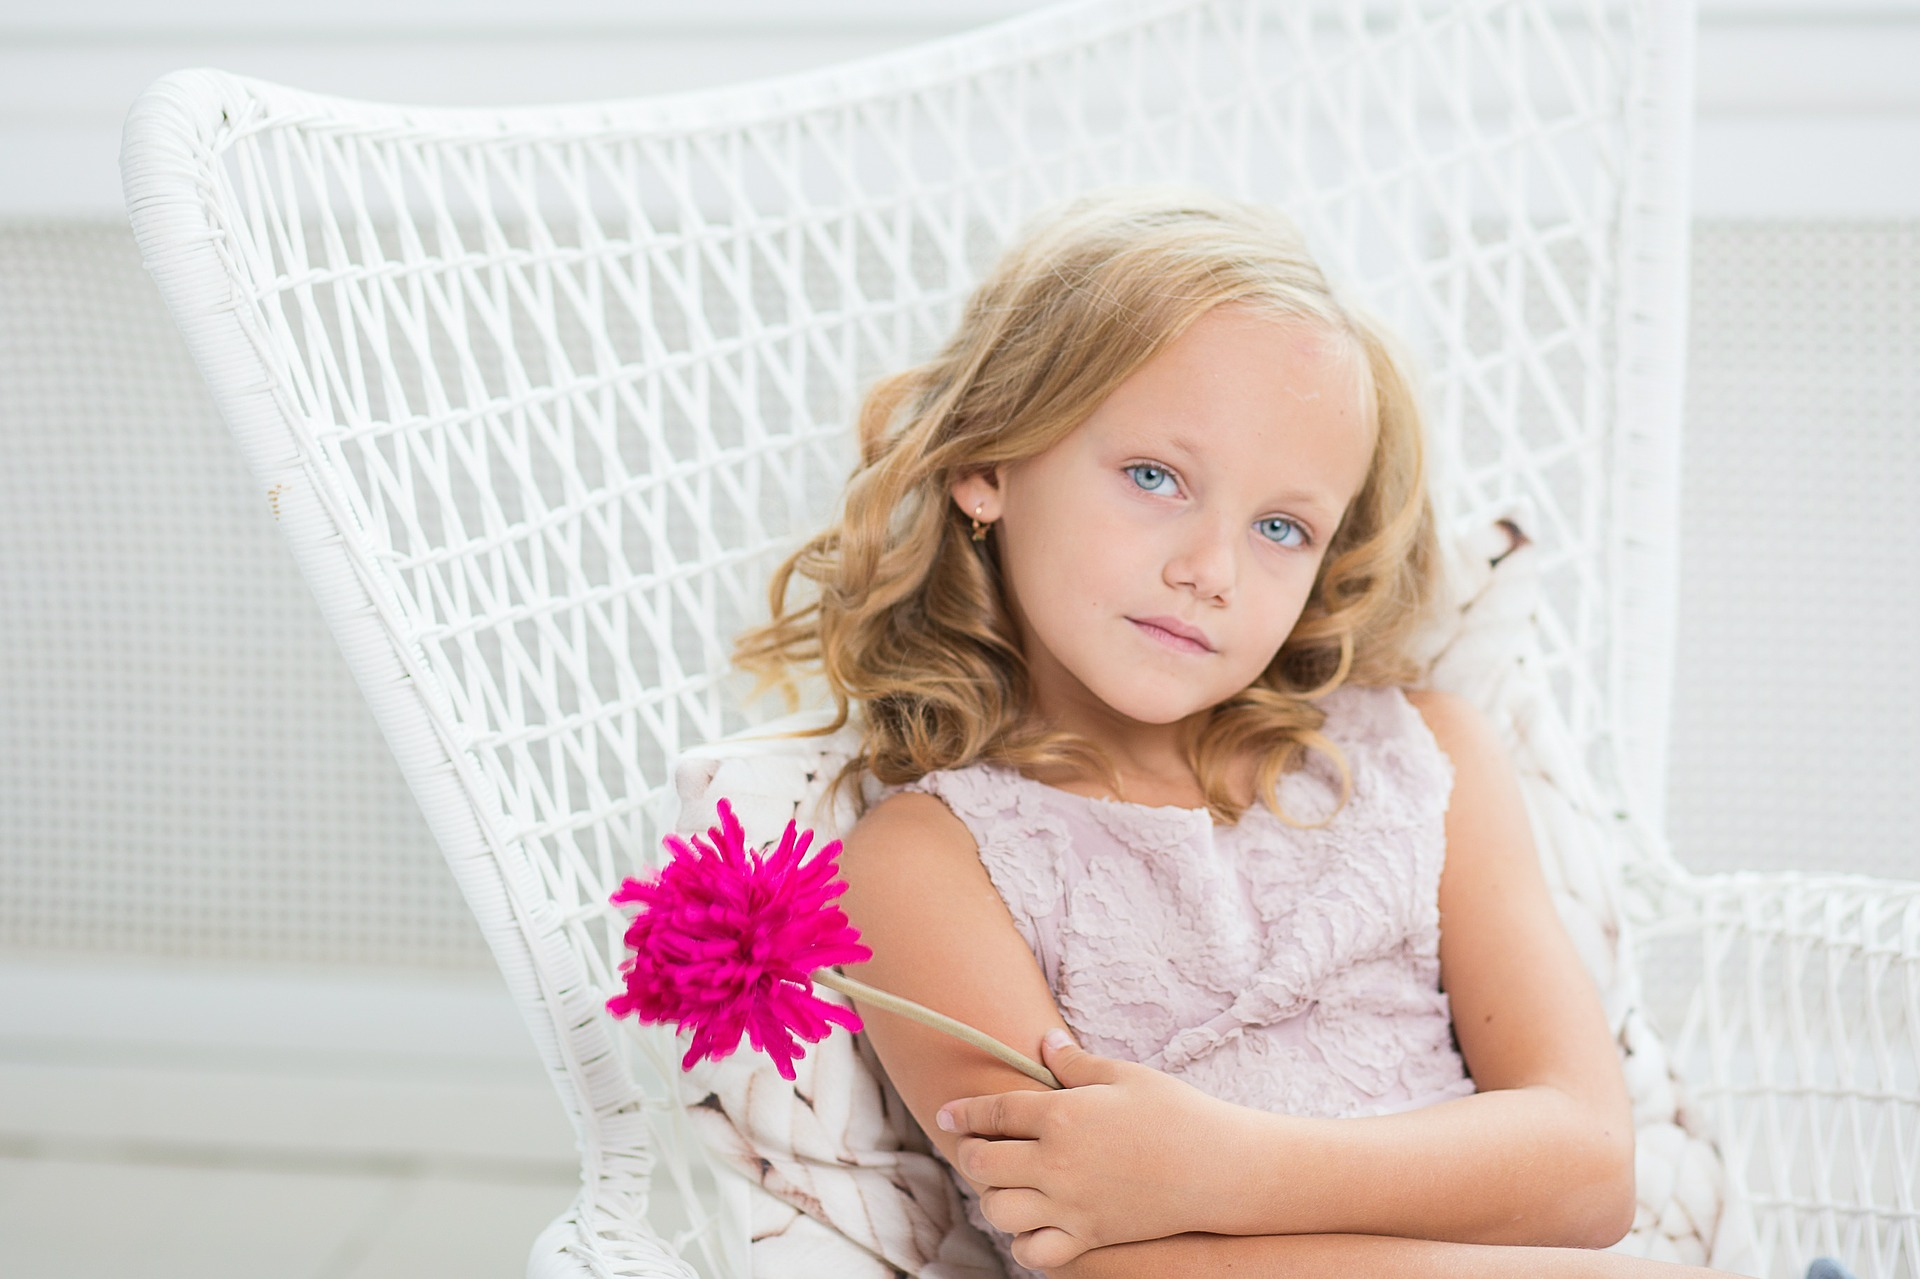 Young Girl holding a flower